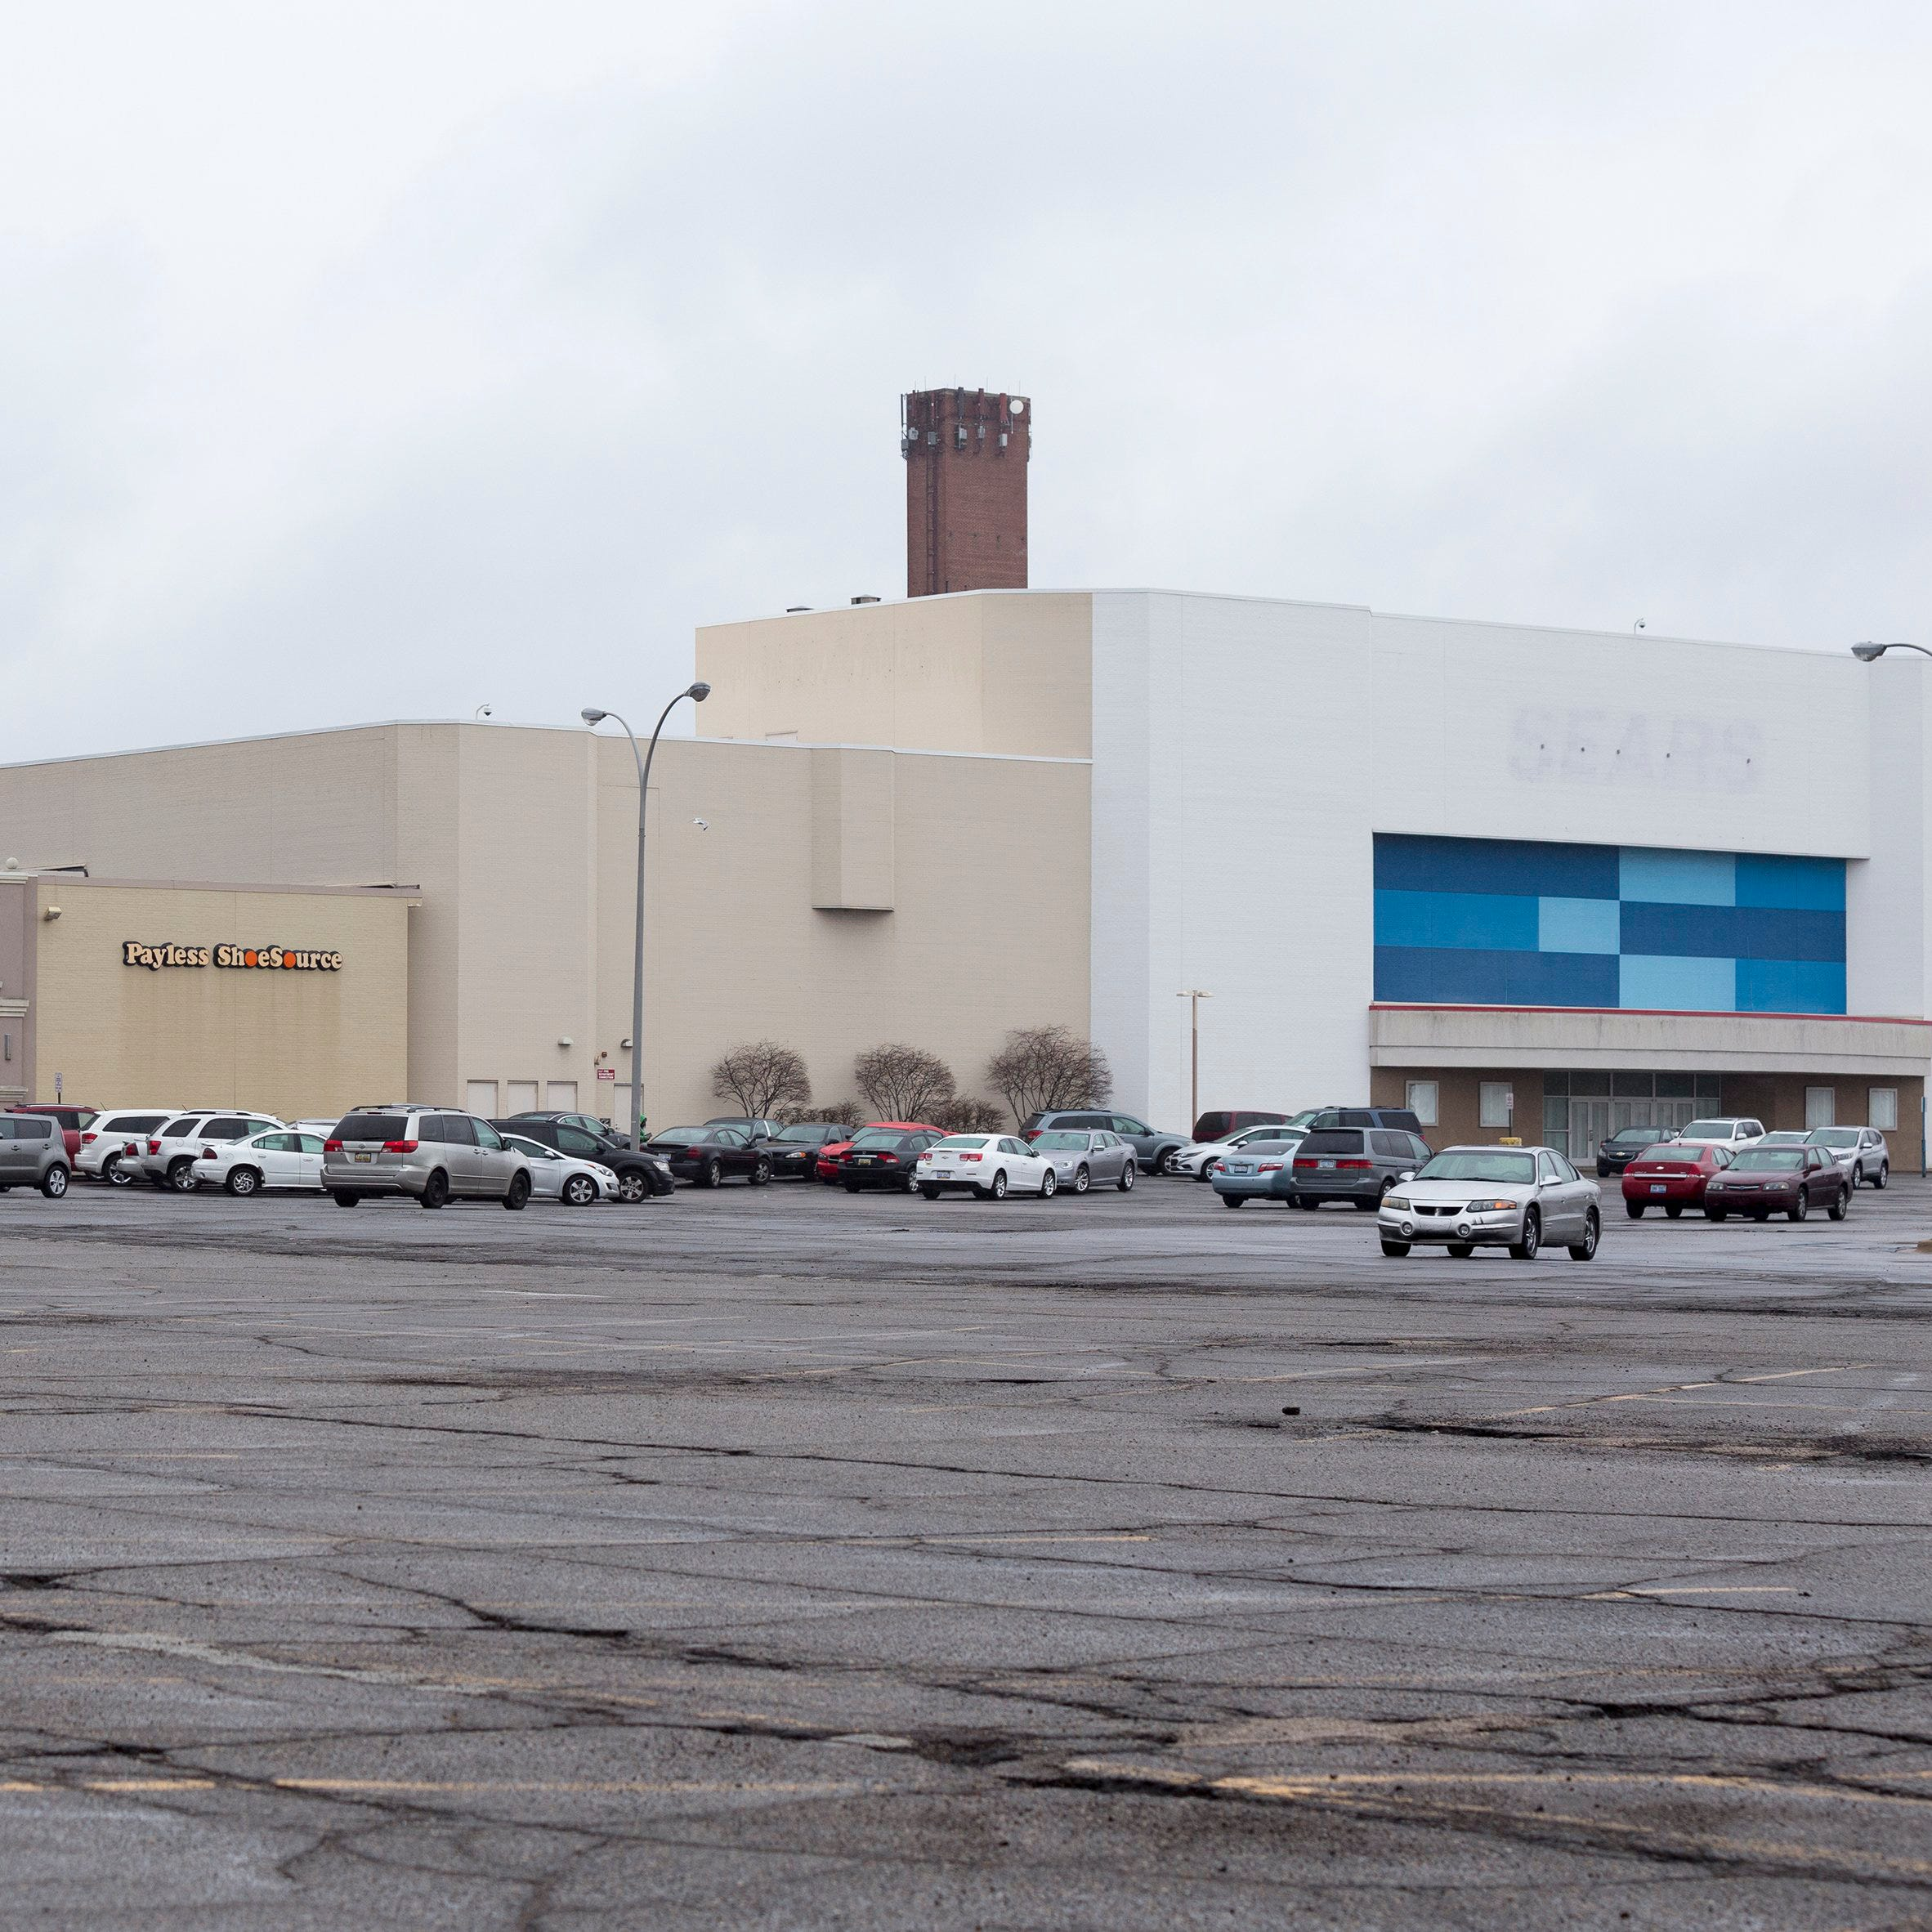 Remaining Michigan Sears stores likely impacted by bankruptcy